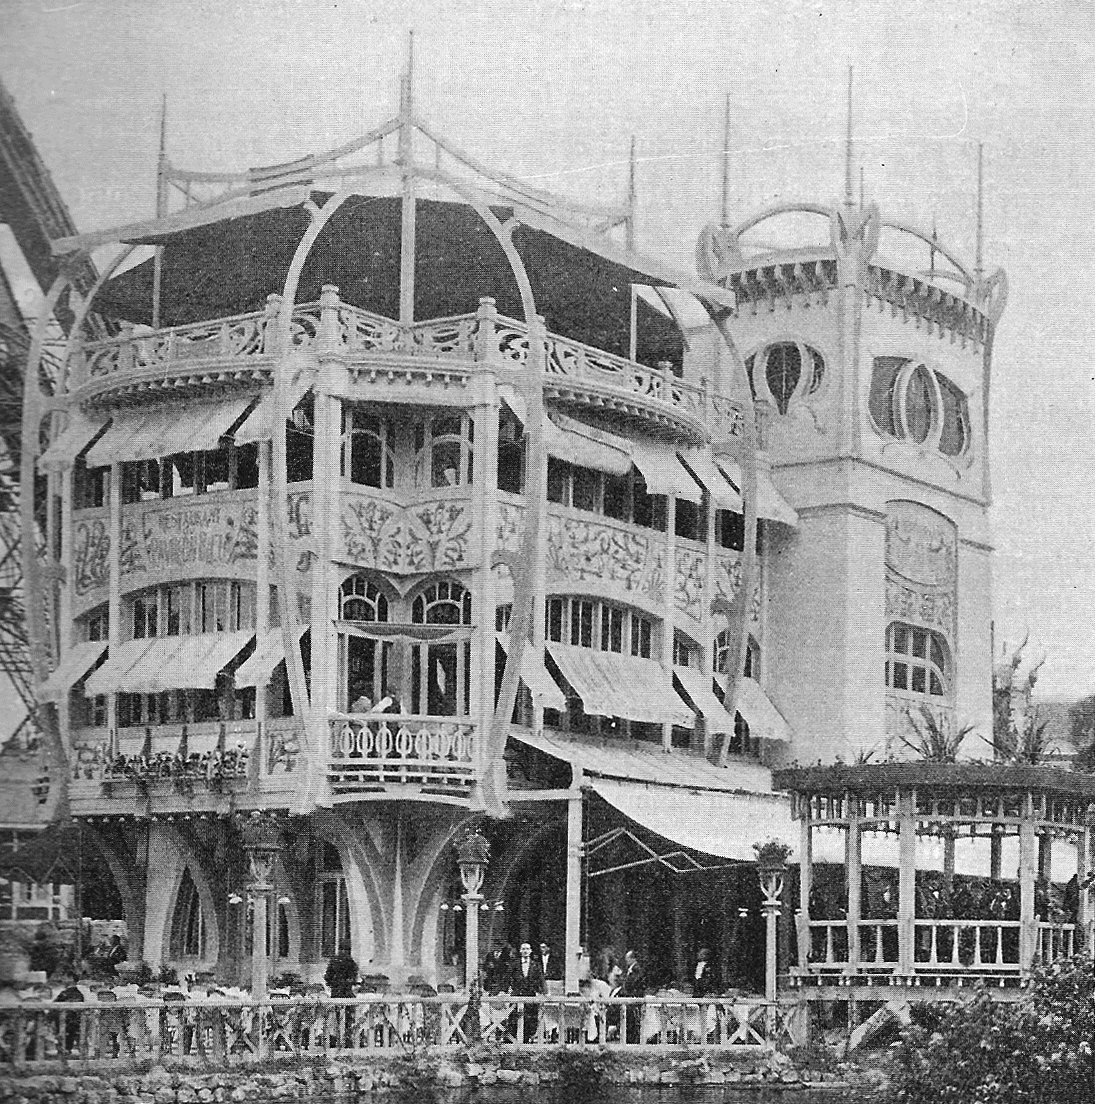 The  Pavillon Bleu  was a  luxury restaurant built for the Universal Exposition of 1900,  ideally located under the Eiffel Tower to attract customers, it differs from dominant eclecticism to adopt an attractive and daring Art Nouveau style, whose originality comes from a blue and yellow bichromy applied to a singularly highlighted wooden structure.